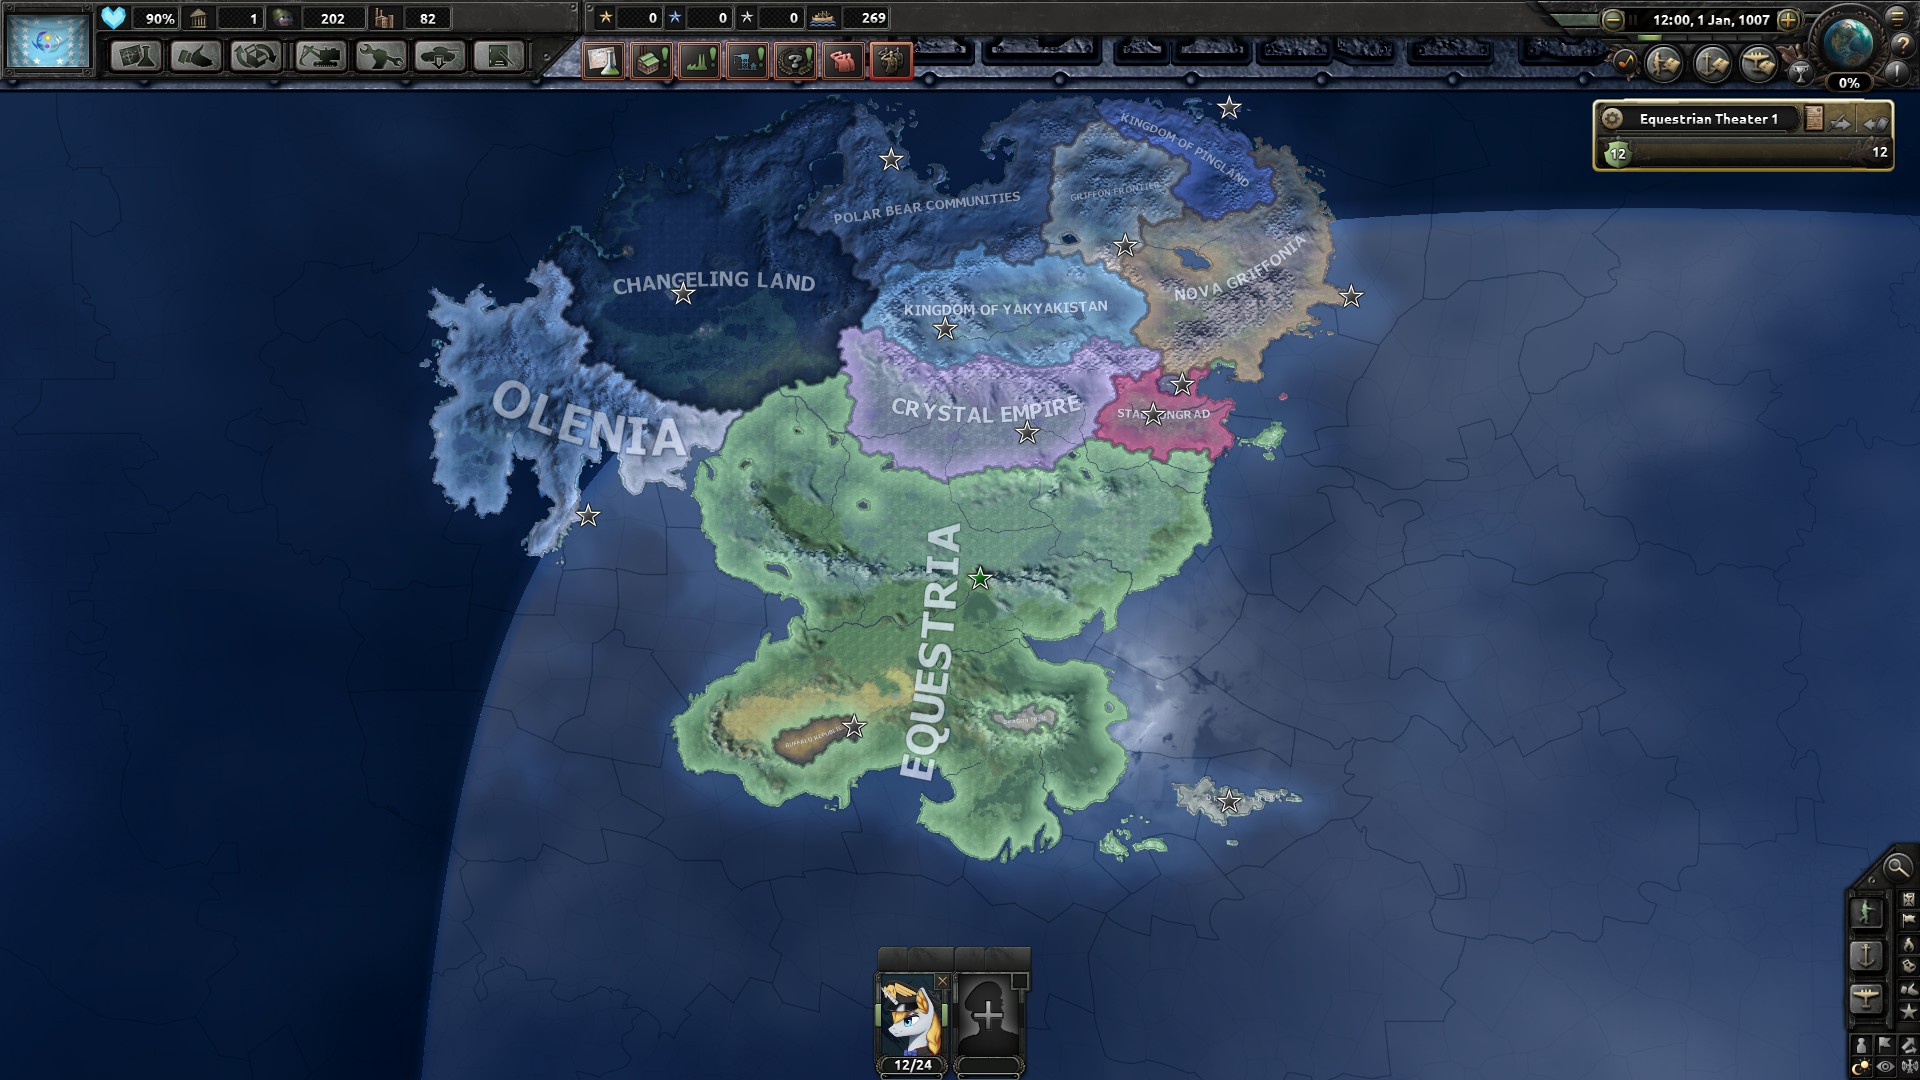 Image 4 Equestria At War Mod For Hearts Of Iron Iv Mod Db